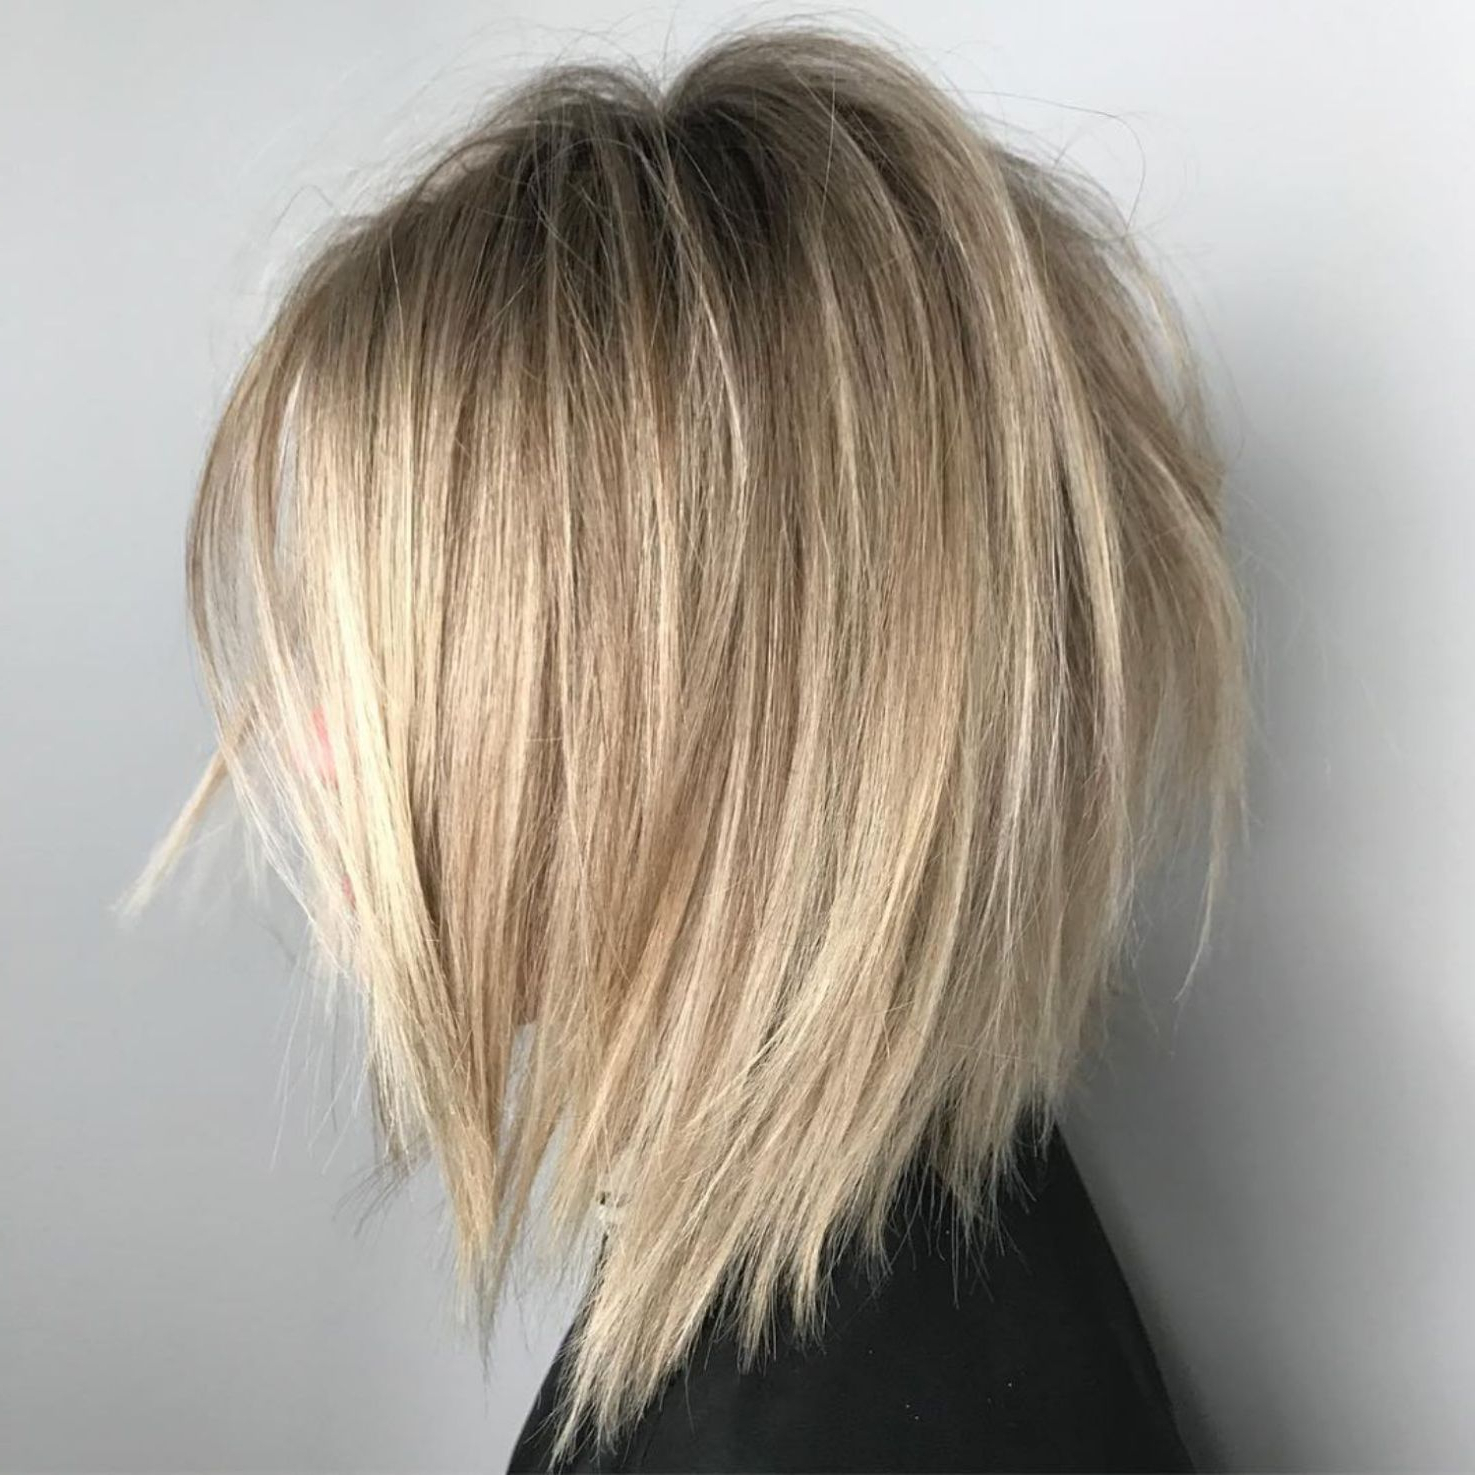 Pin On Hair Pertaining To Choppy Ash Blonde Bob Hairstyles (View 20 of 20)